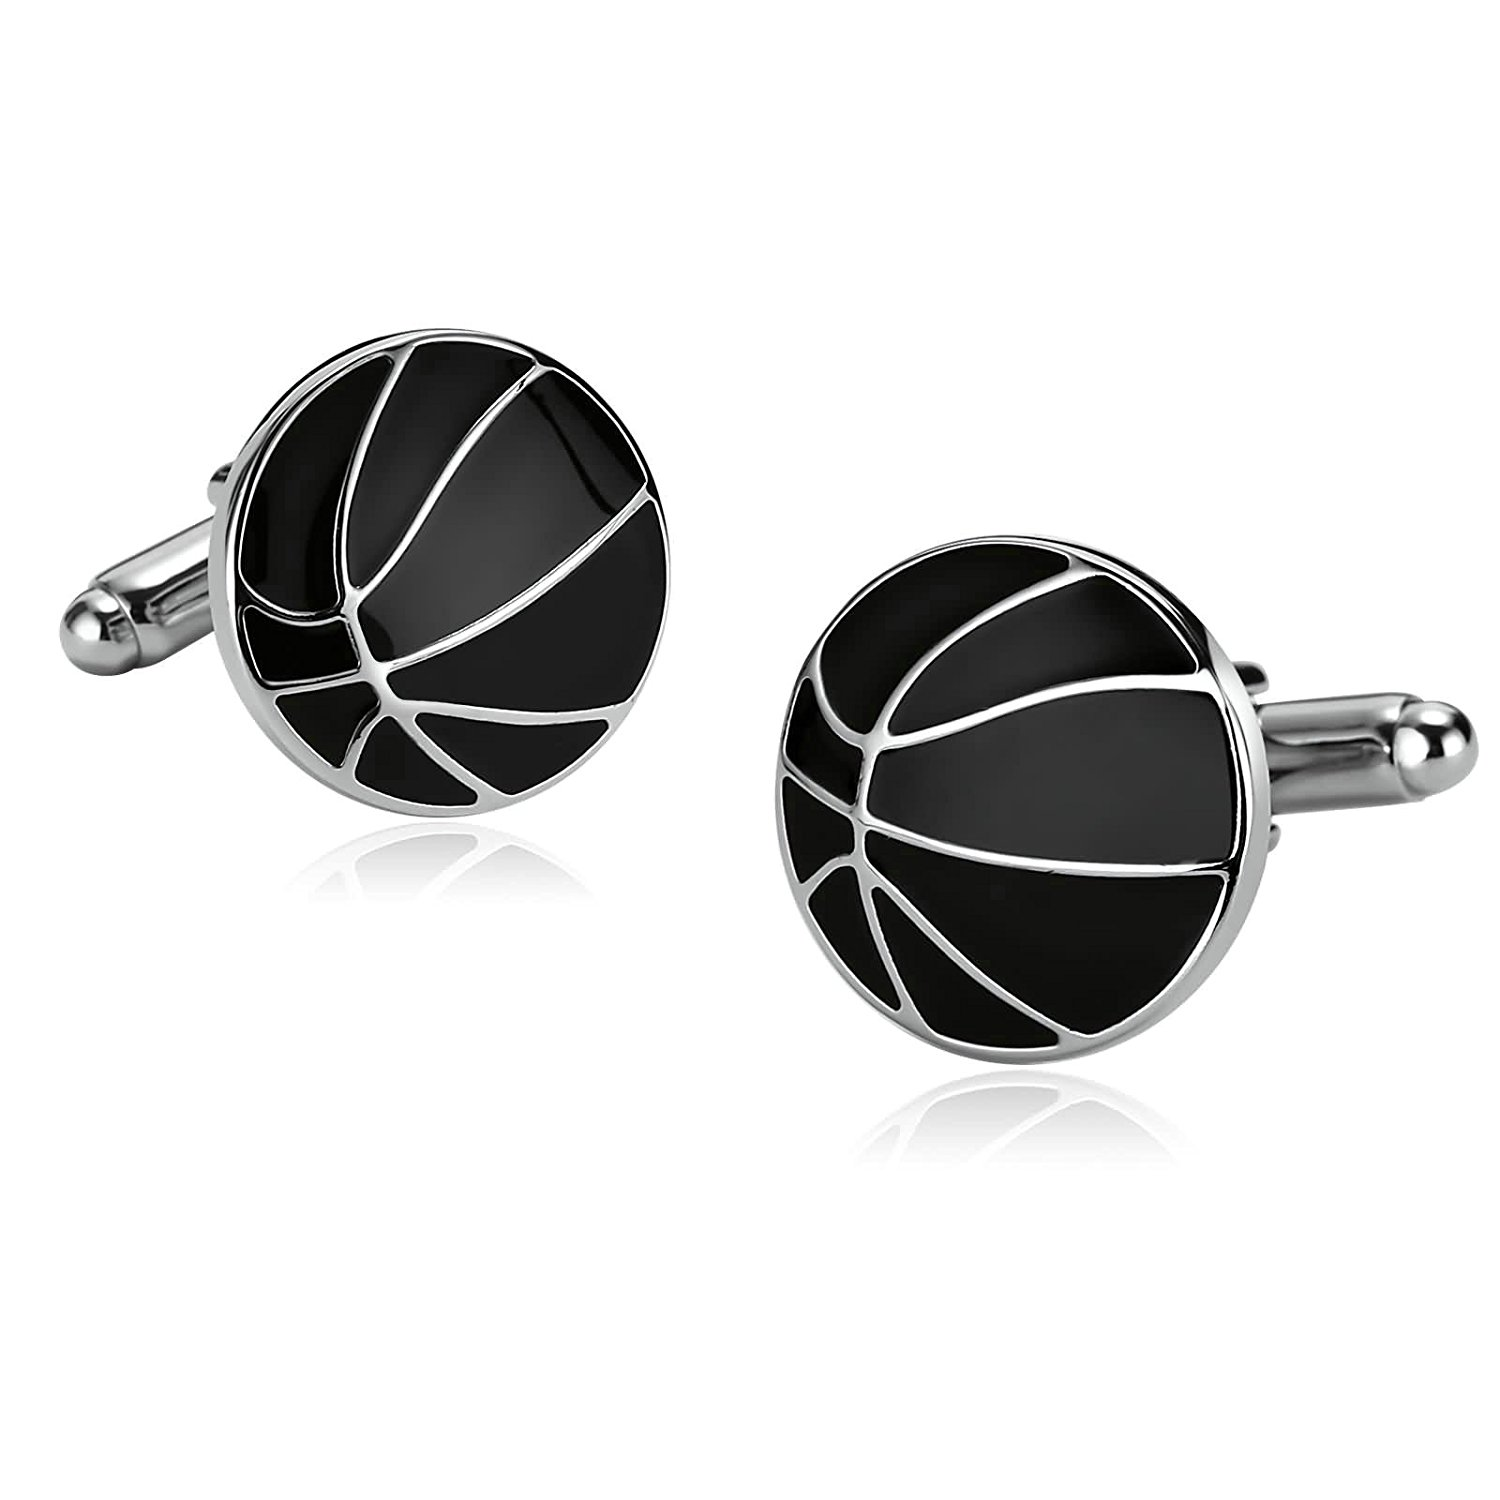 Aooaz 5 Styles Mens Stainless Steel Cufflinks 2Pcs, Novelty Cufflinks, Dad Unique Jewelry Box Charm Mh96